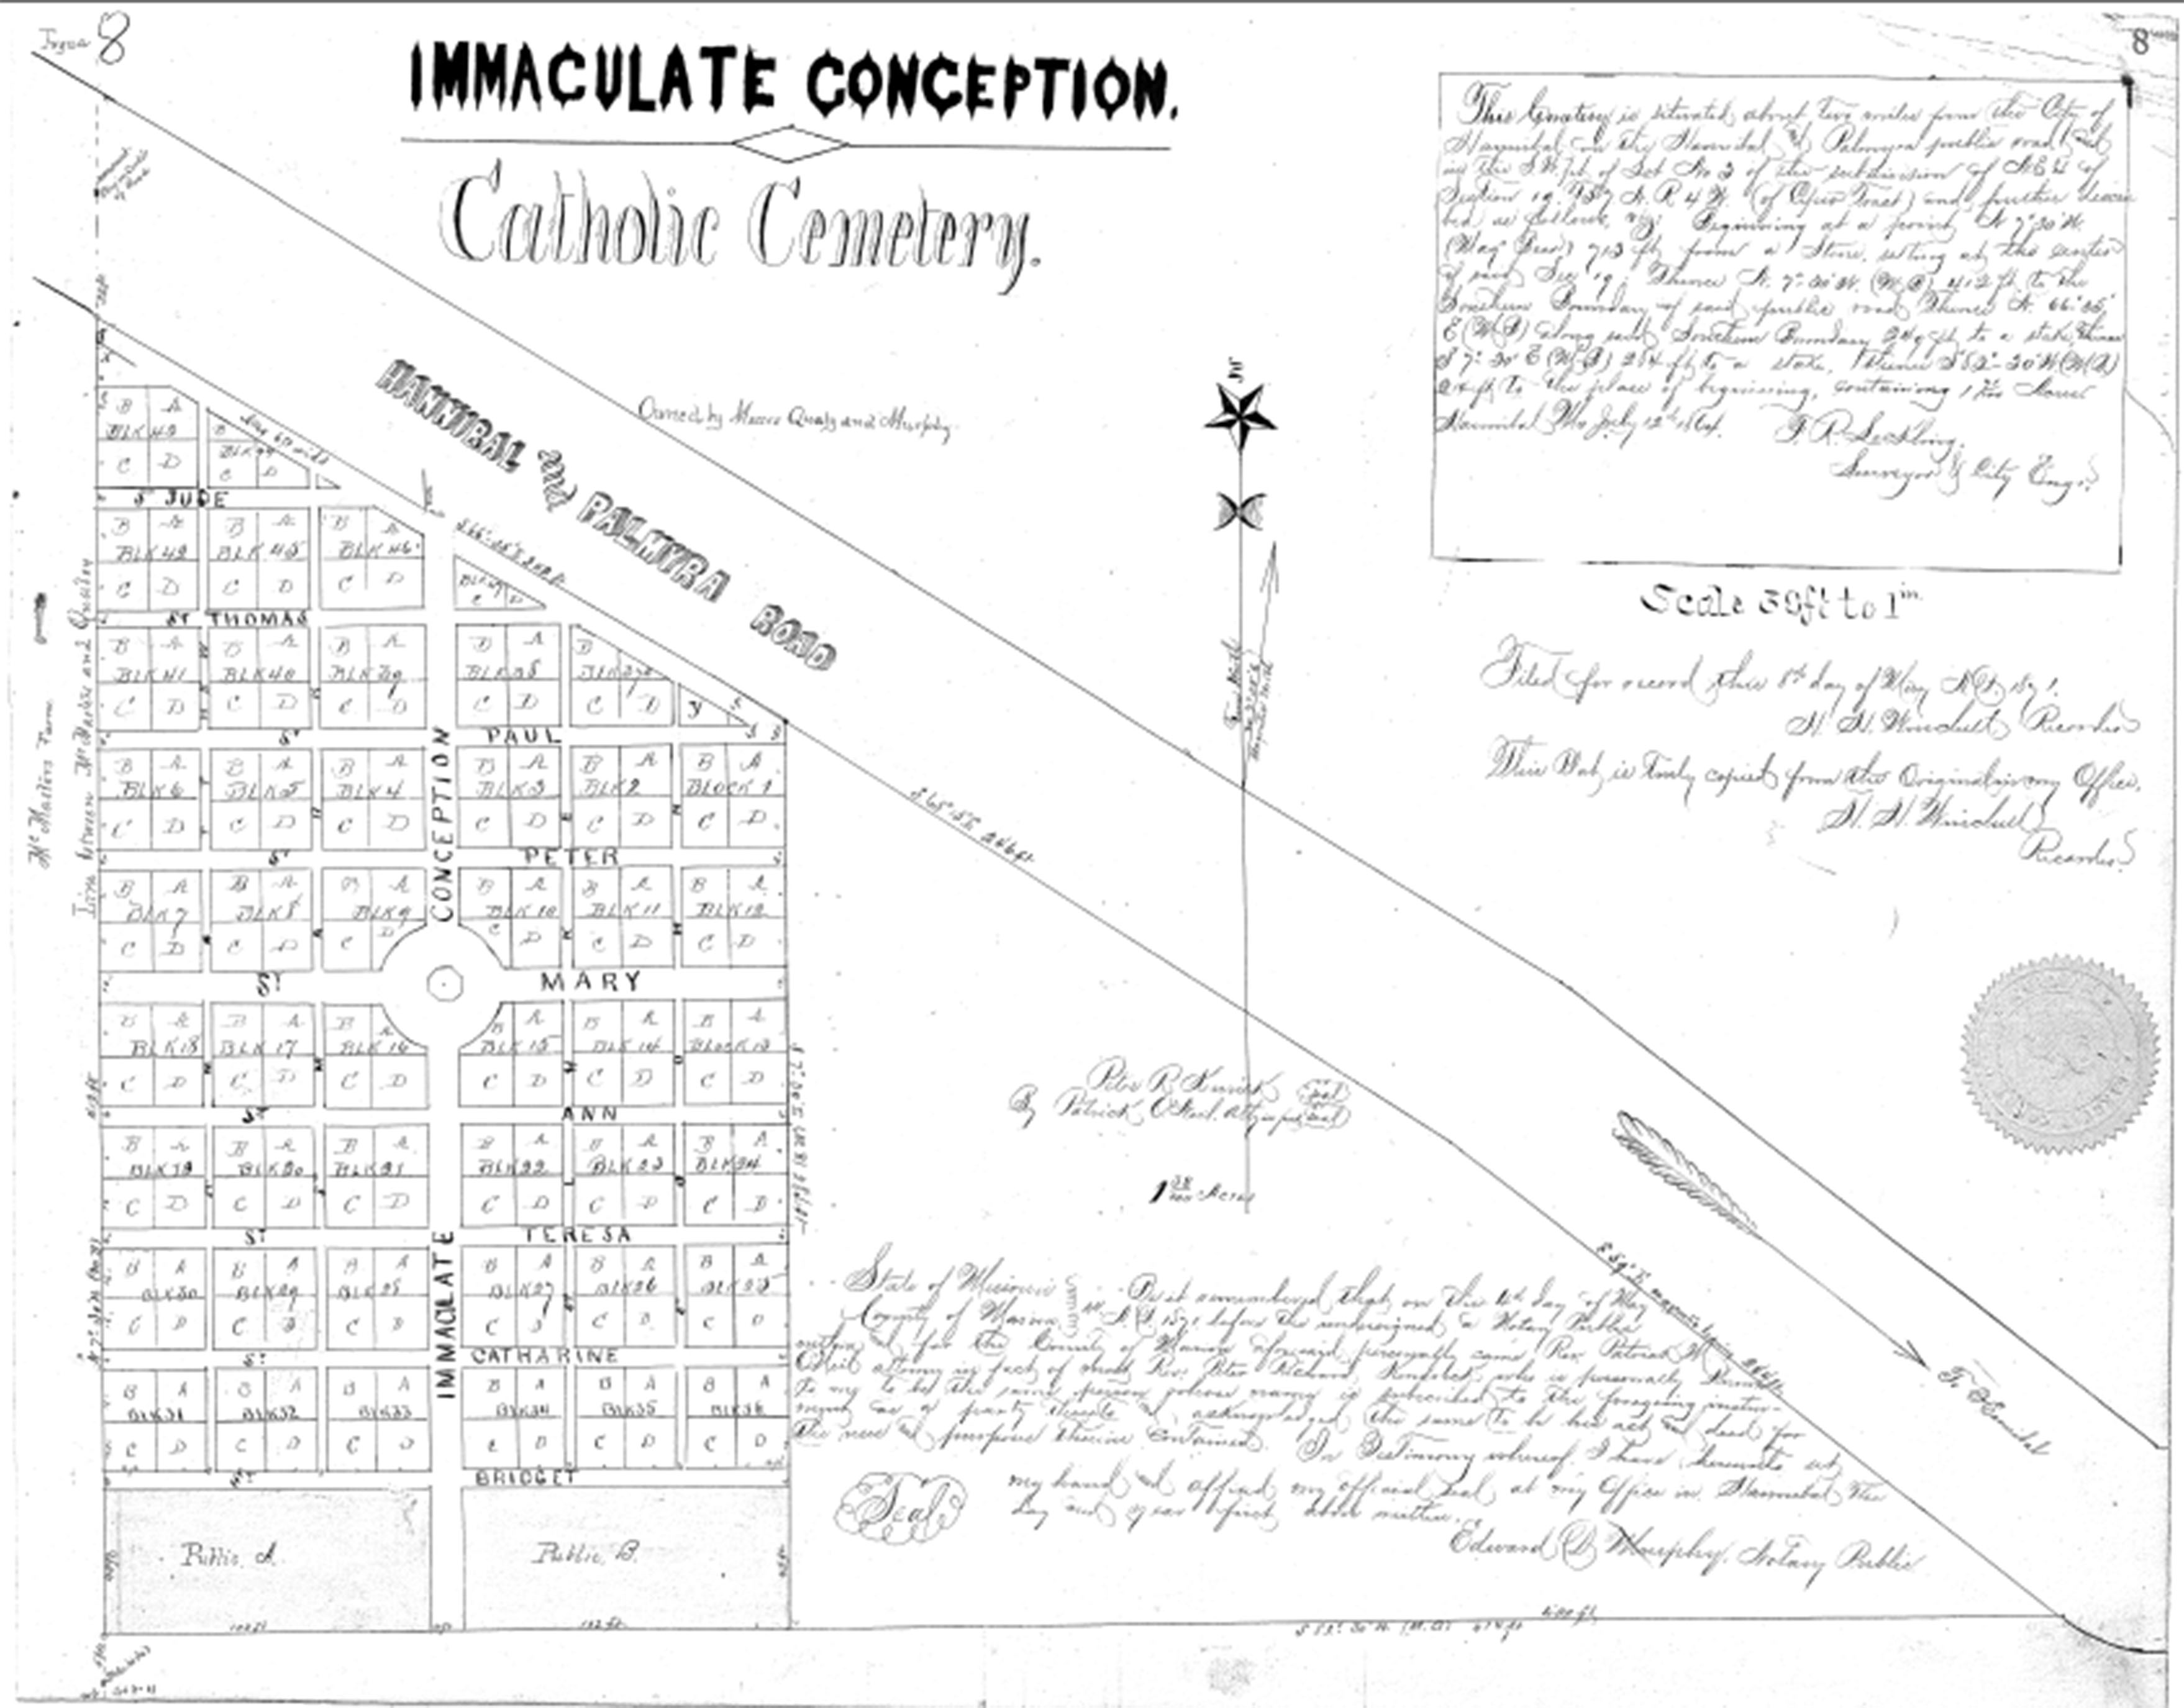 Irish settlers rest upon the land they deeded for cemetery use maryloumontgomery